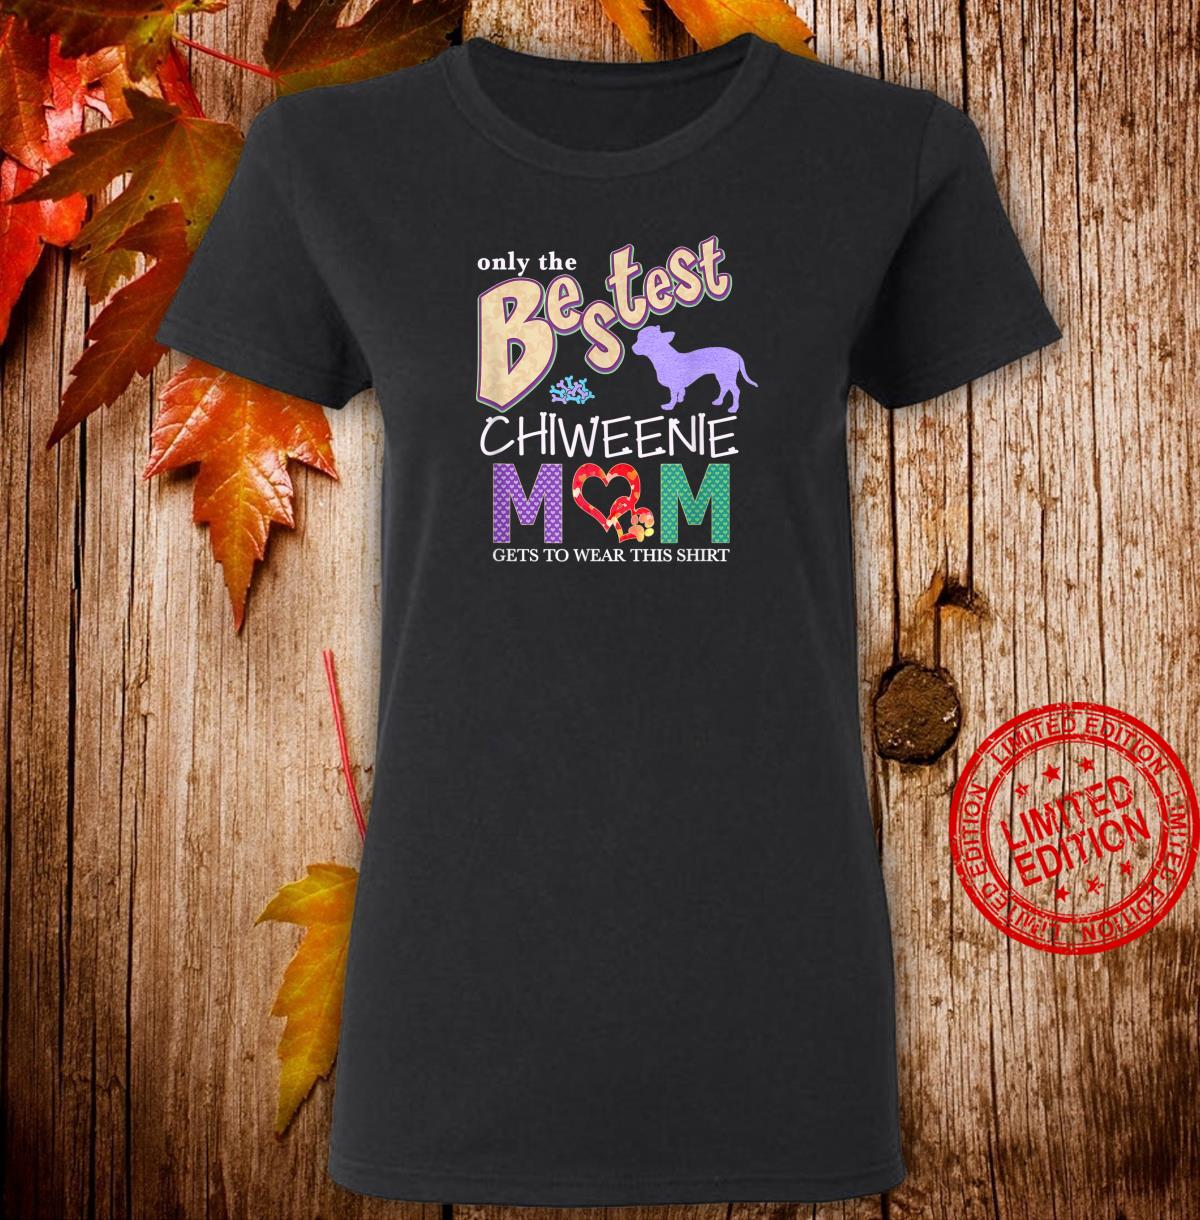 Chiweenie Shirt Design for Chiweenie Dogs Shirt ladies tee